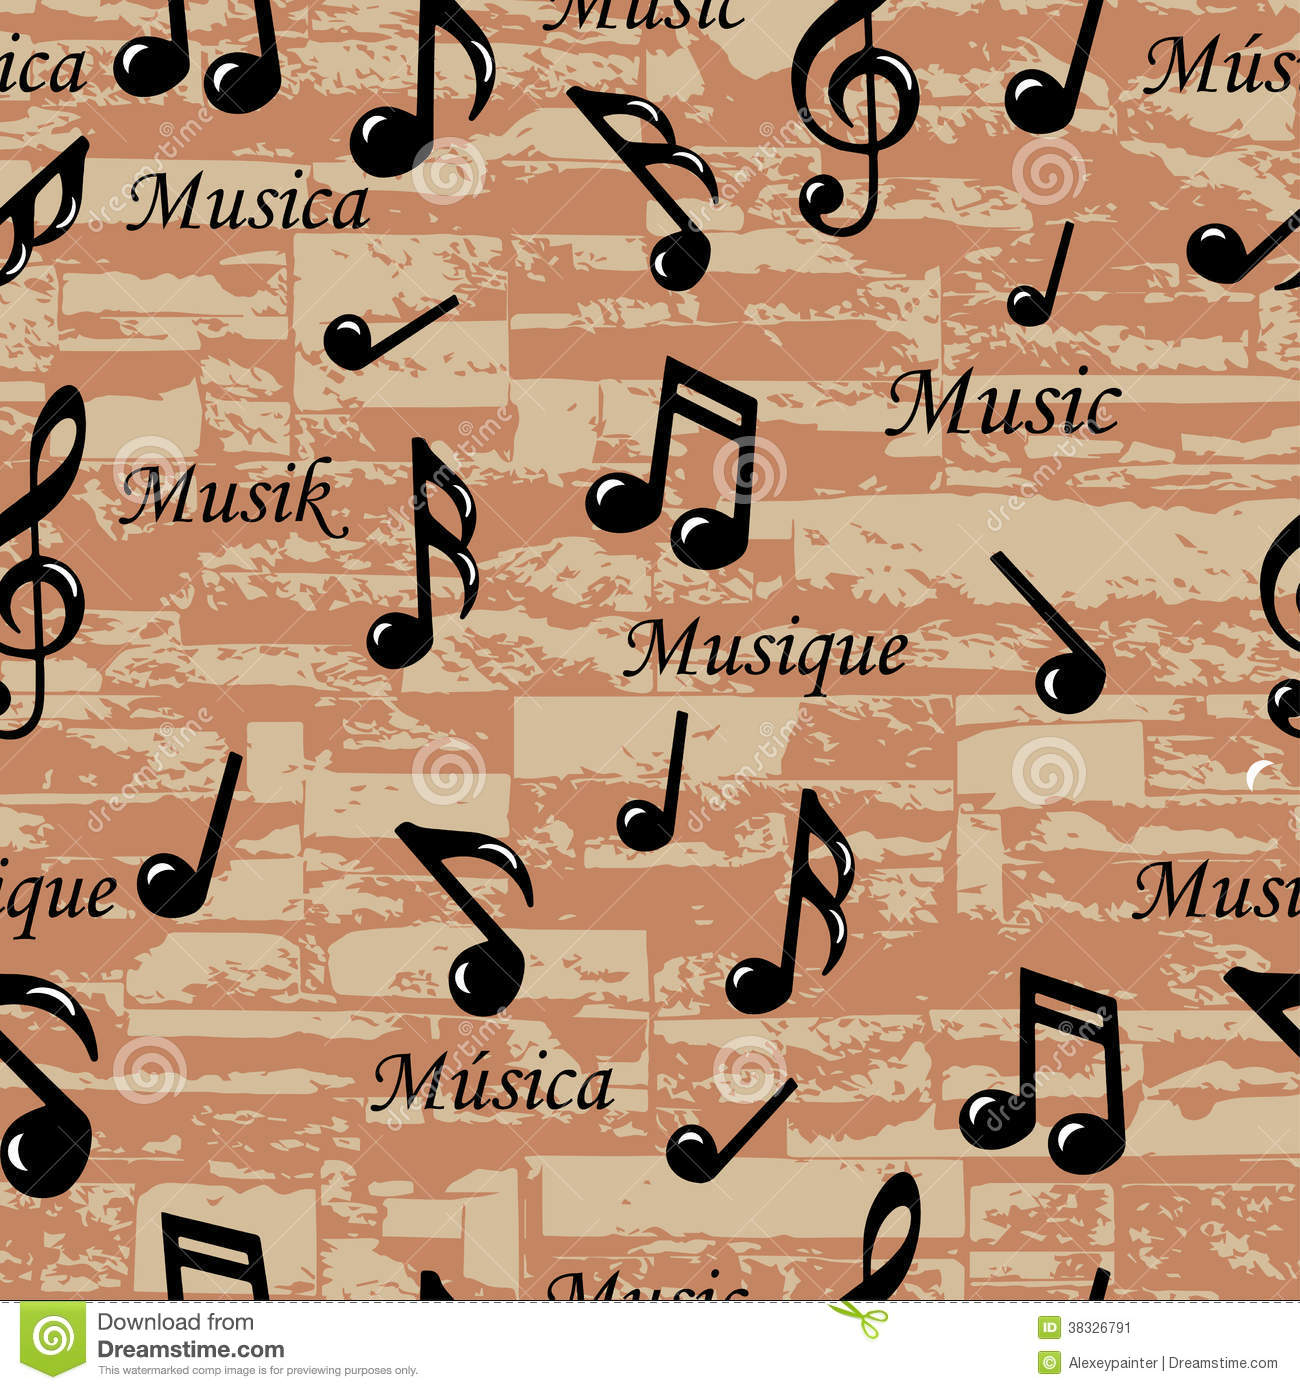 Cool Wallpaper Music Pattern - abstract-music-notes-seamless-pattern-vector-background-wallpaper-illustration-your-design-38326791  Collection_244178.jpg